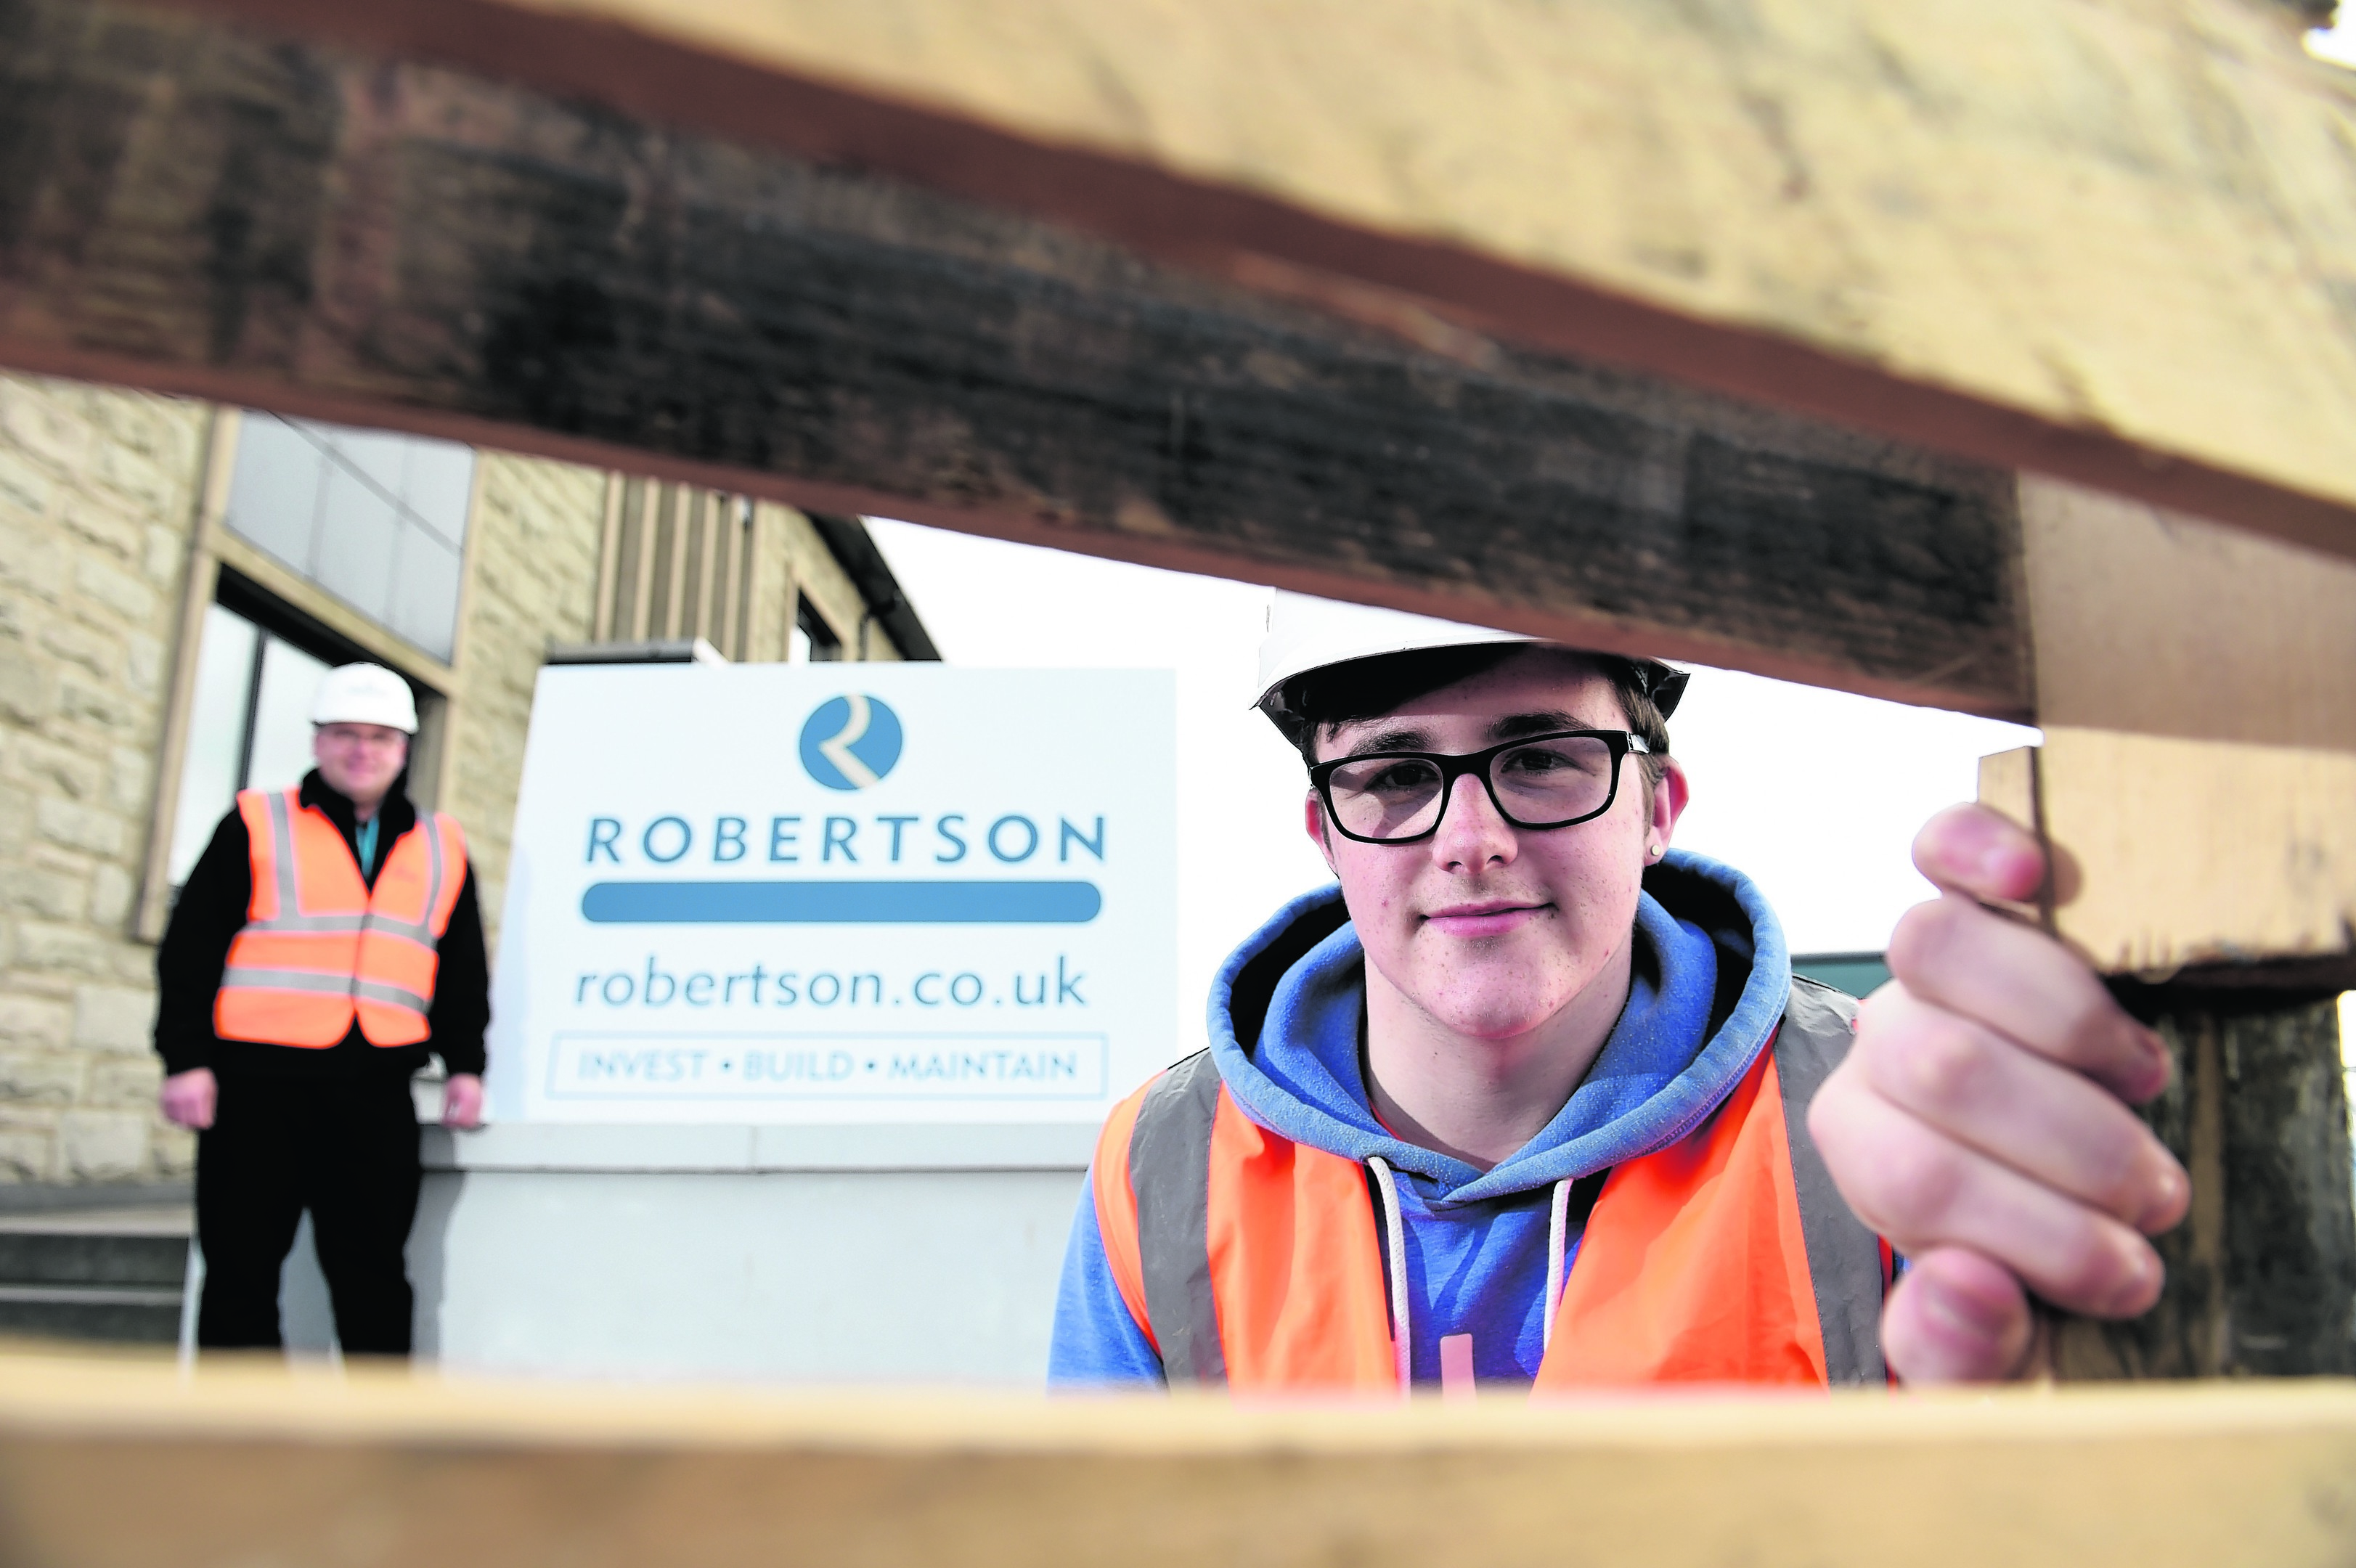 Apprentice joiner Cameron McLeod at Robertson Group, and Steve Anderson (site manager) was an apprentice 25 years ago.